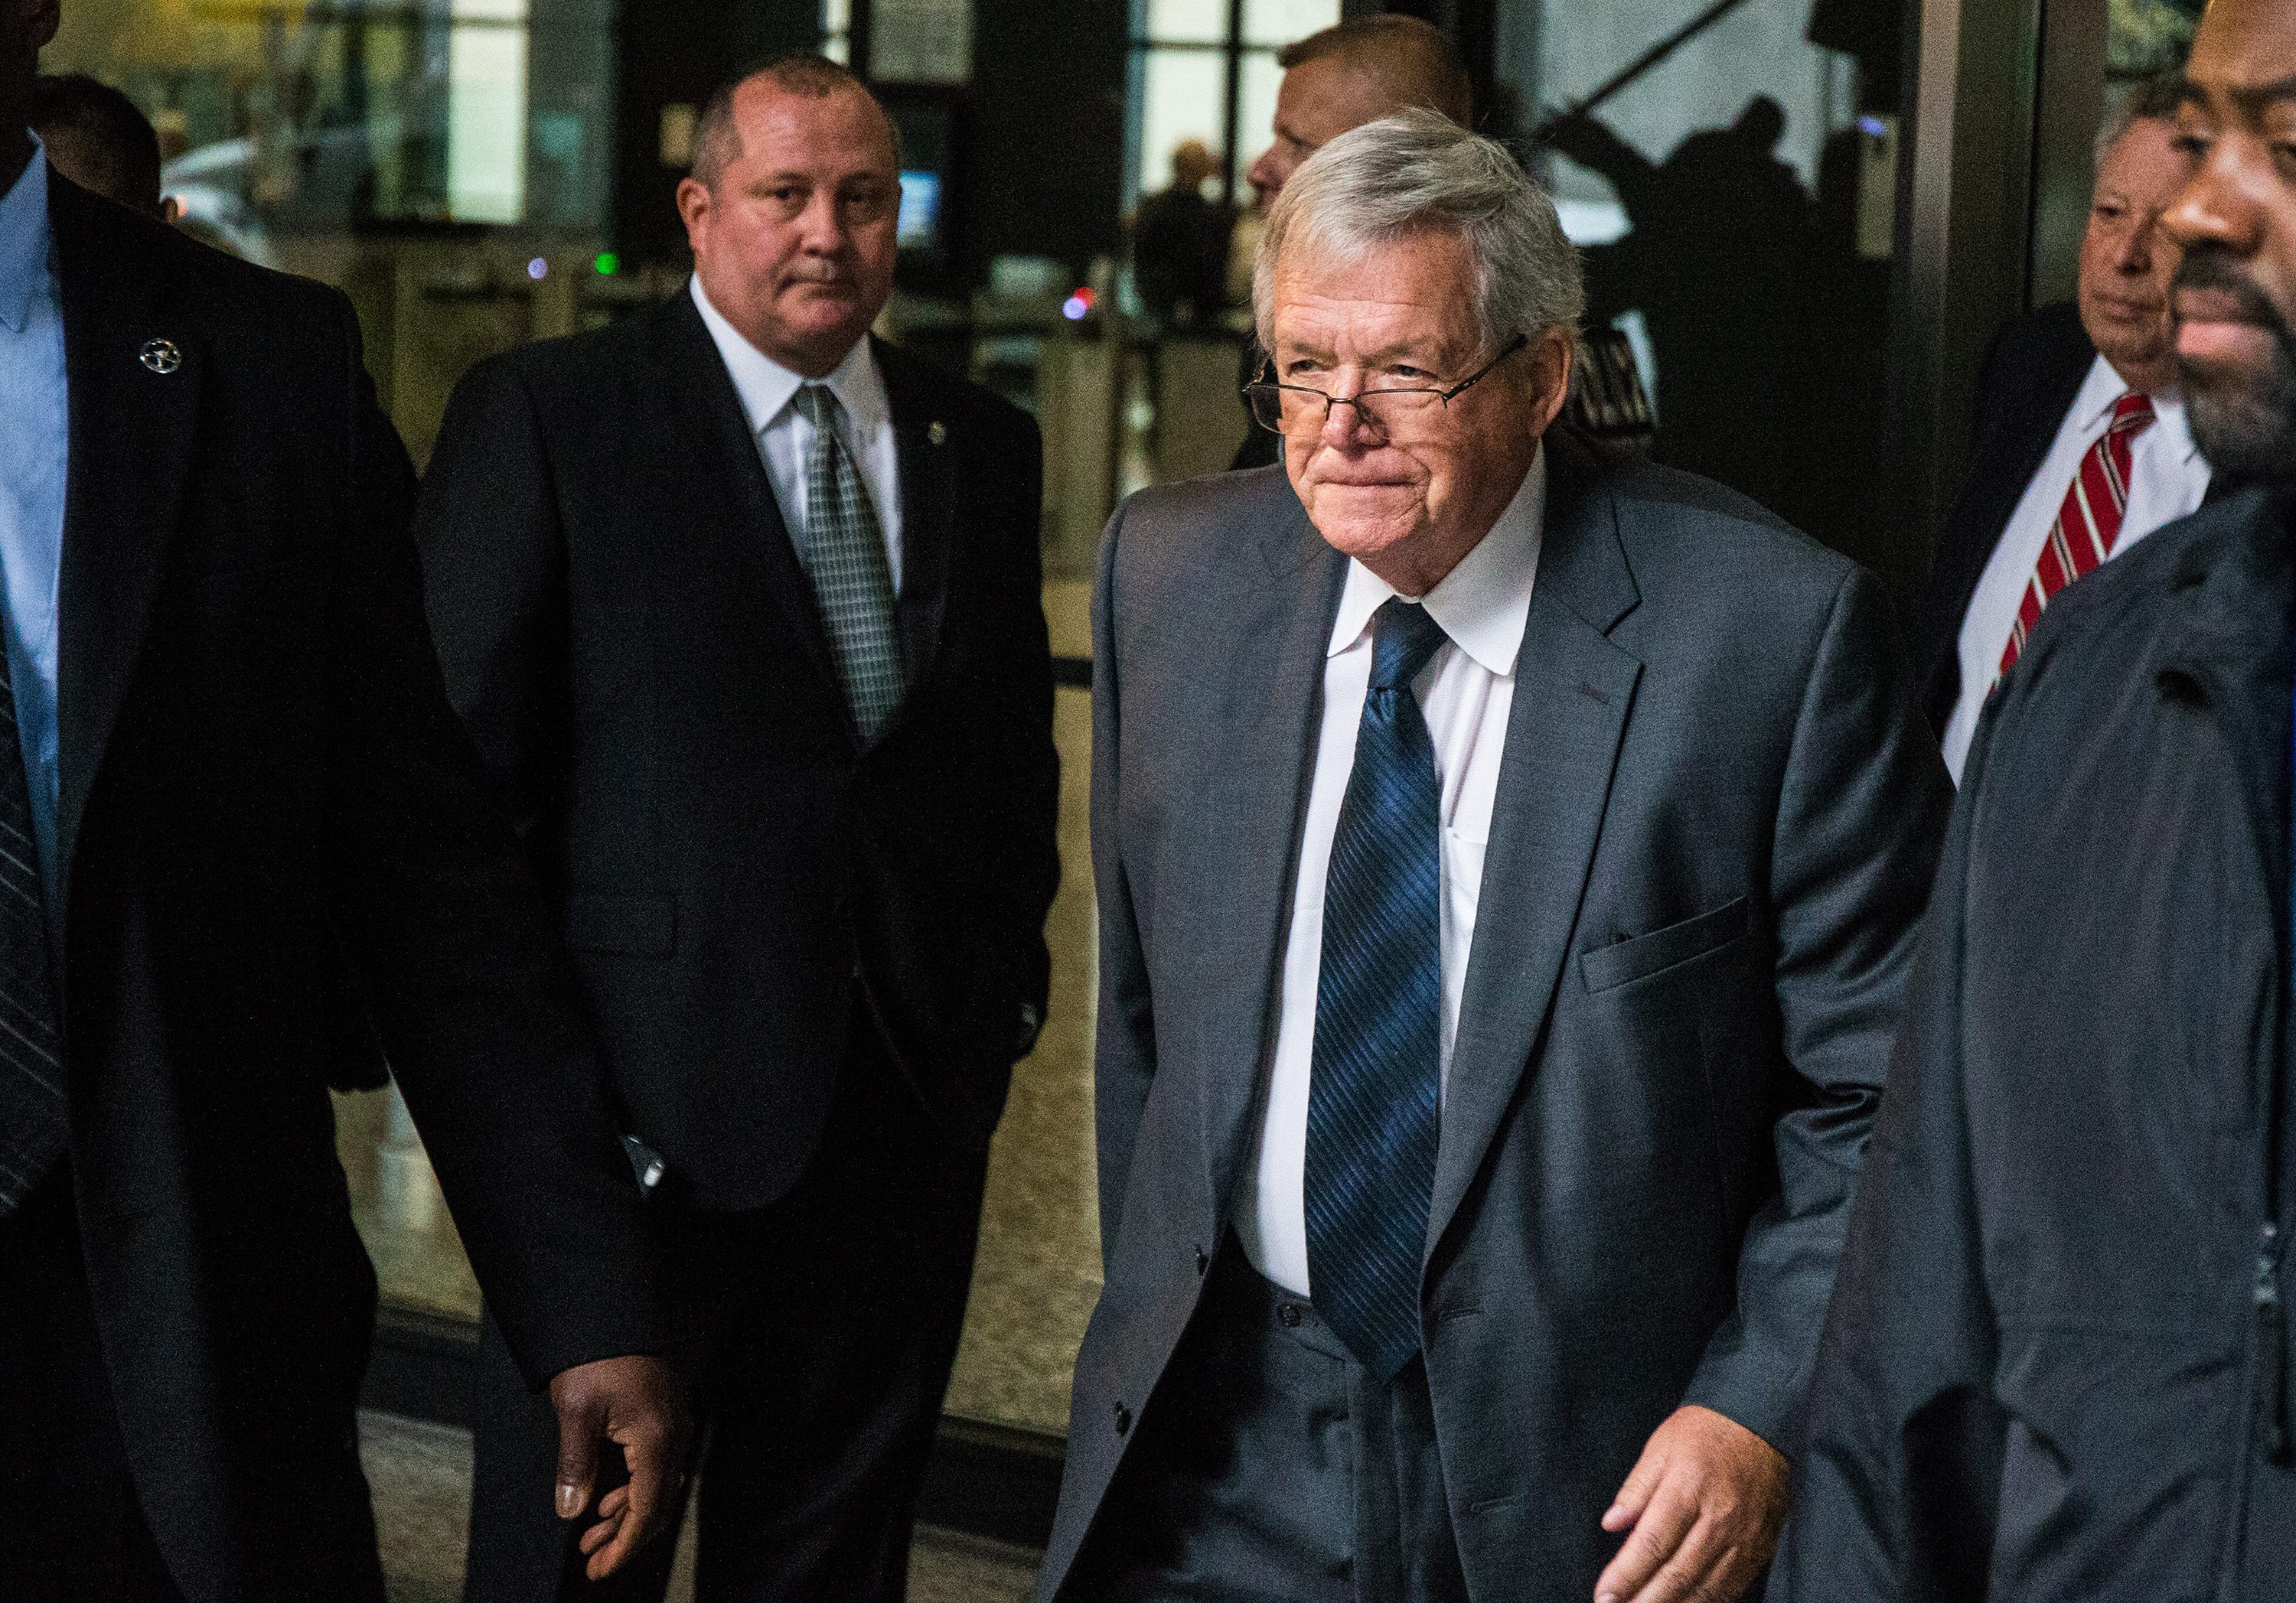 Former U.S. House Speaker Dennis Hastert leaves after a guilty plea at Dirksen U.S. Courthouse on Wednesday, Oct. 28, 2015 in Chicago.